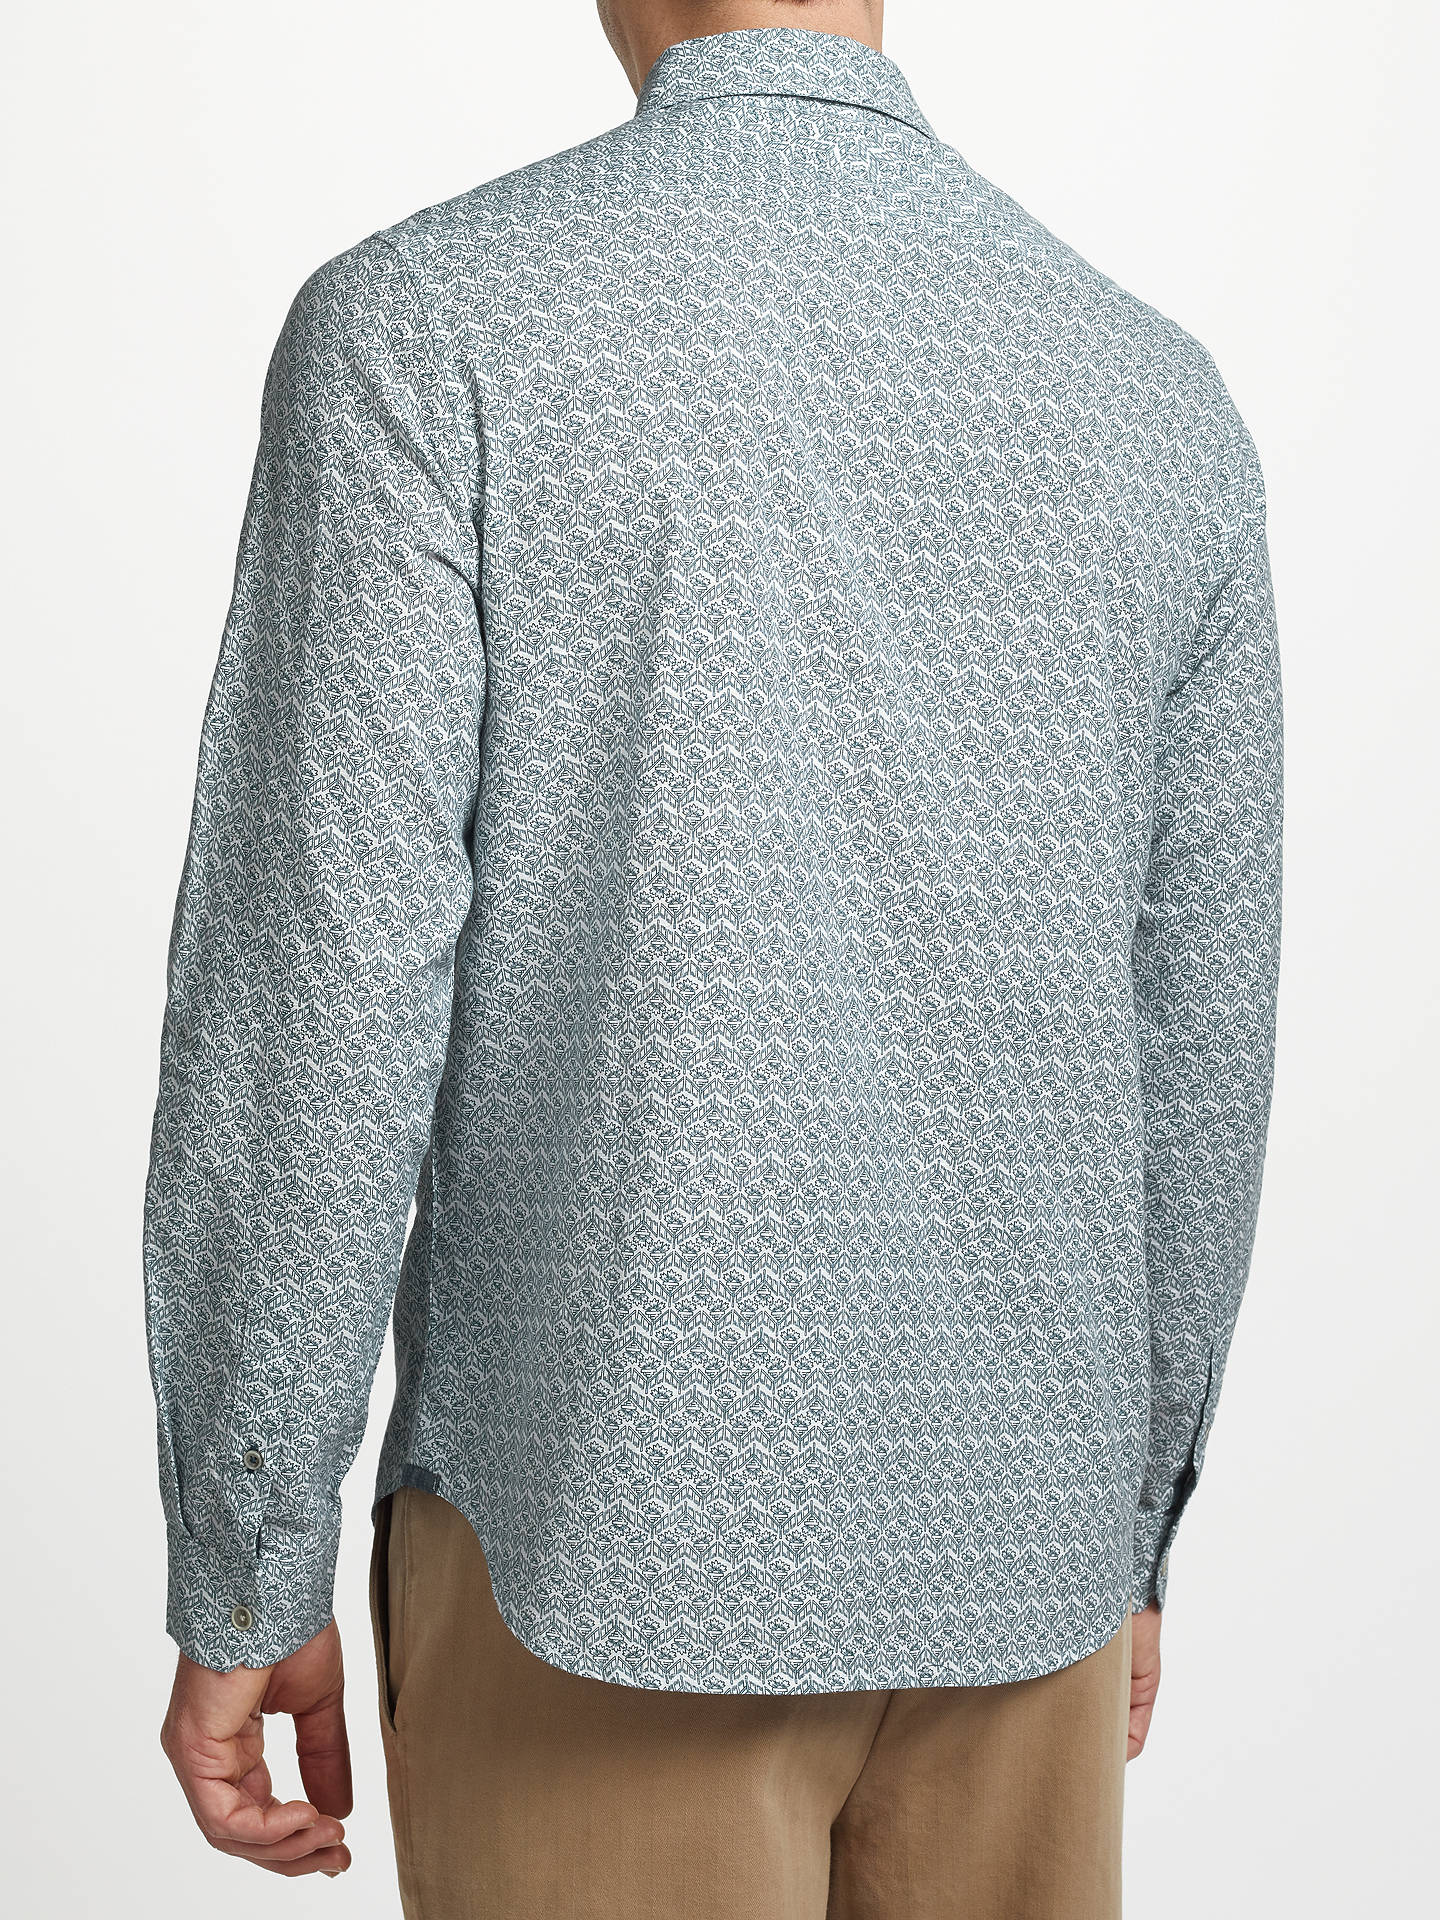 BuyJohn Lewis & Partners Dahlia Tile Print Shirt, Navy, S Online at johnlewis.com